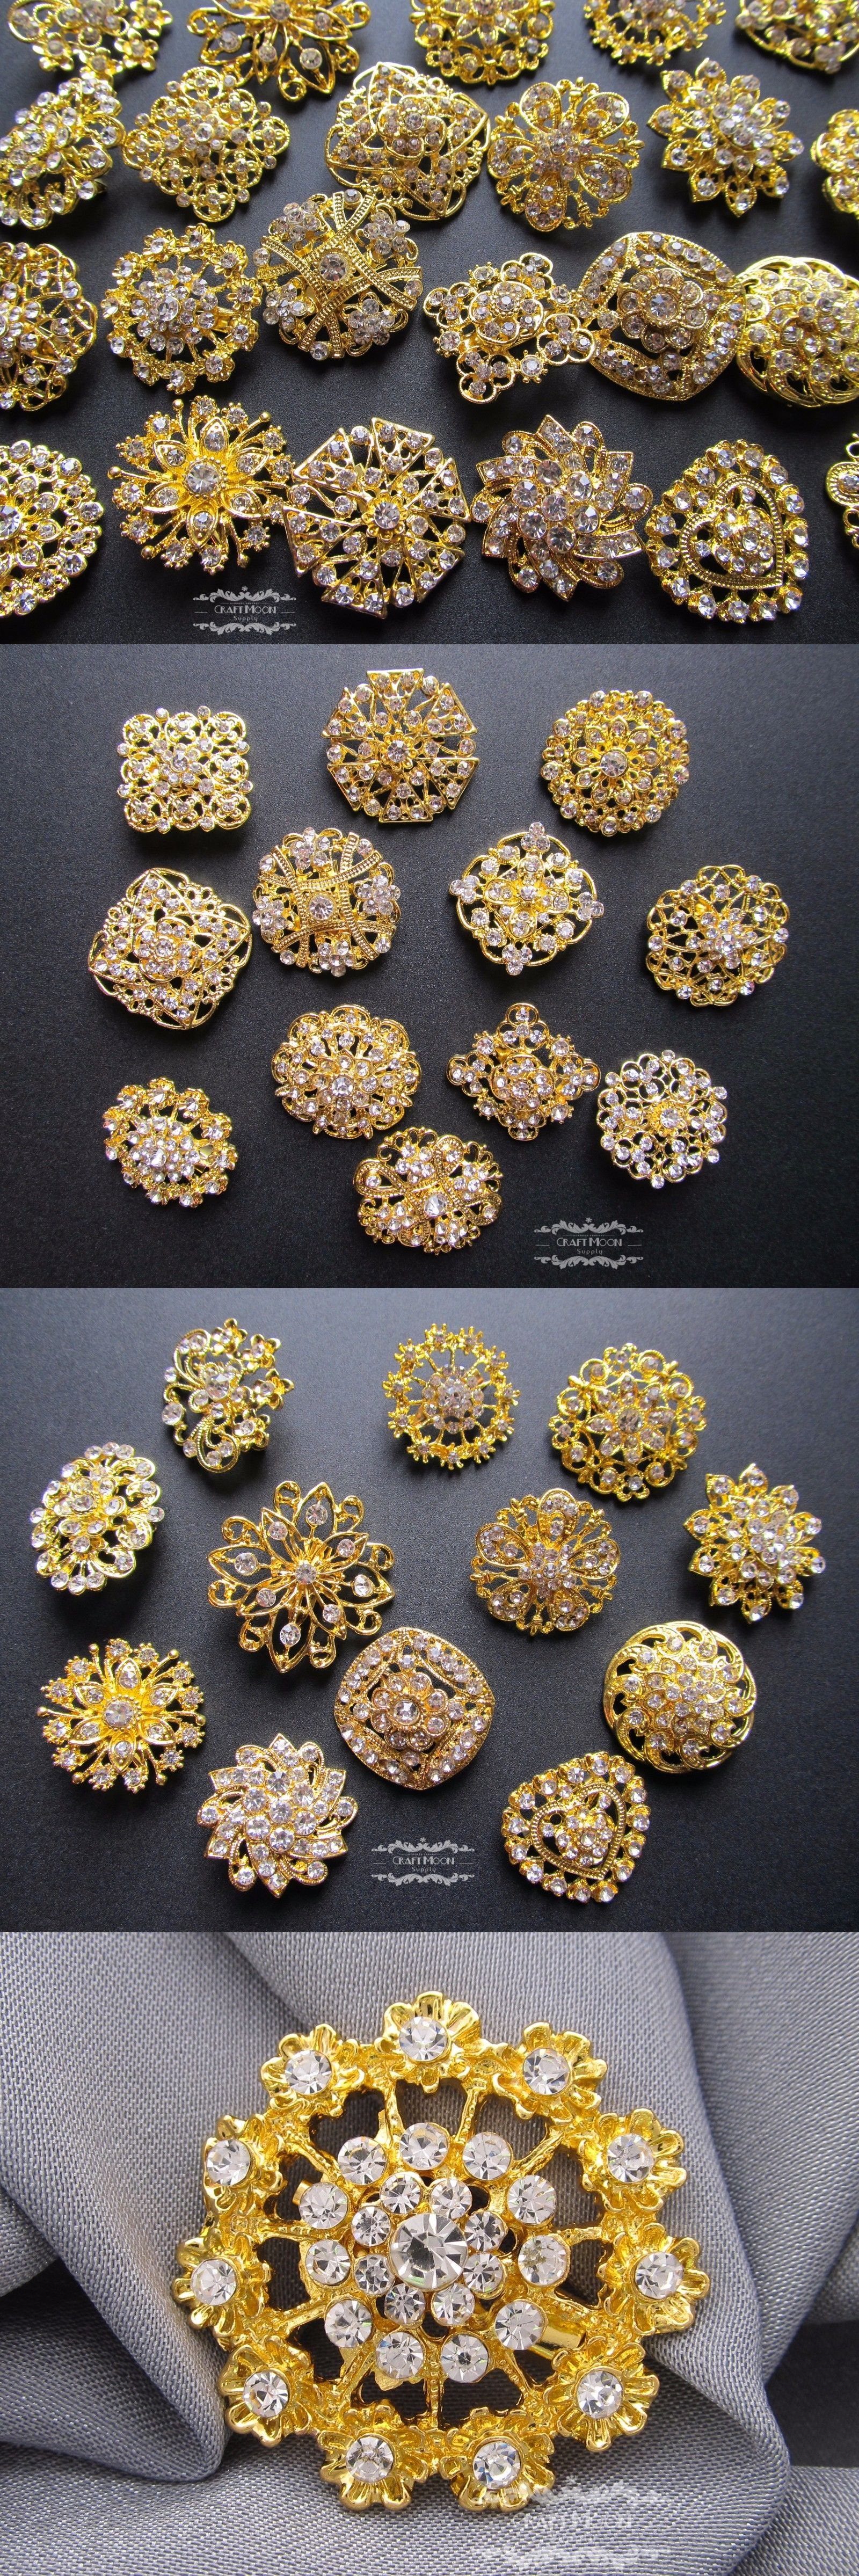 Pins and Brooches 50677: Brooch Lot 100 Gold Mixed Pin Rhinestone Pearl Crystal Wholesale Wedding Bouquet BUY IT NOW ONLY: $59.95